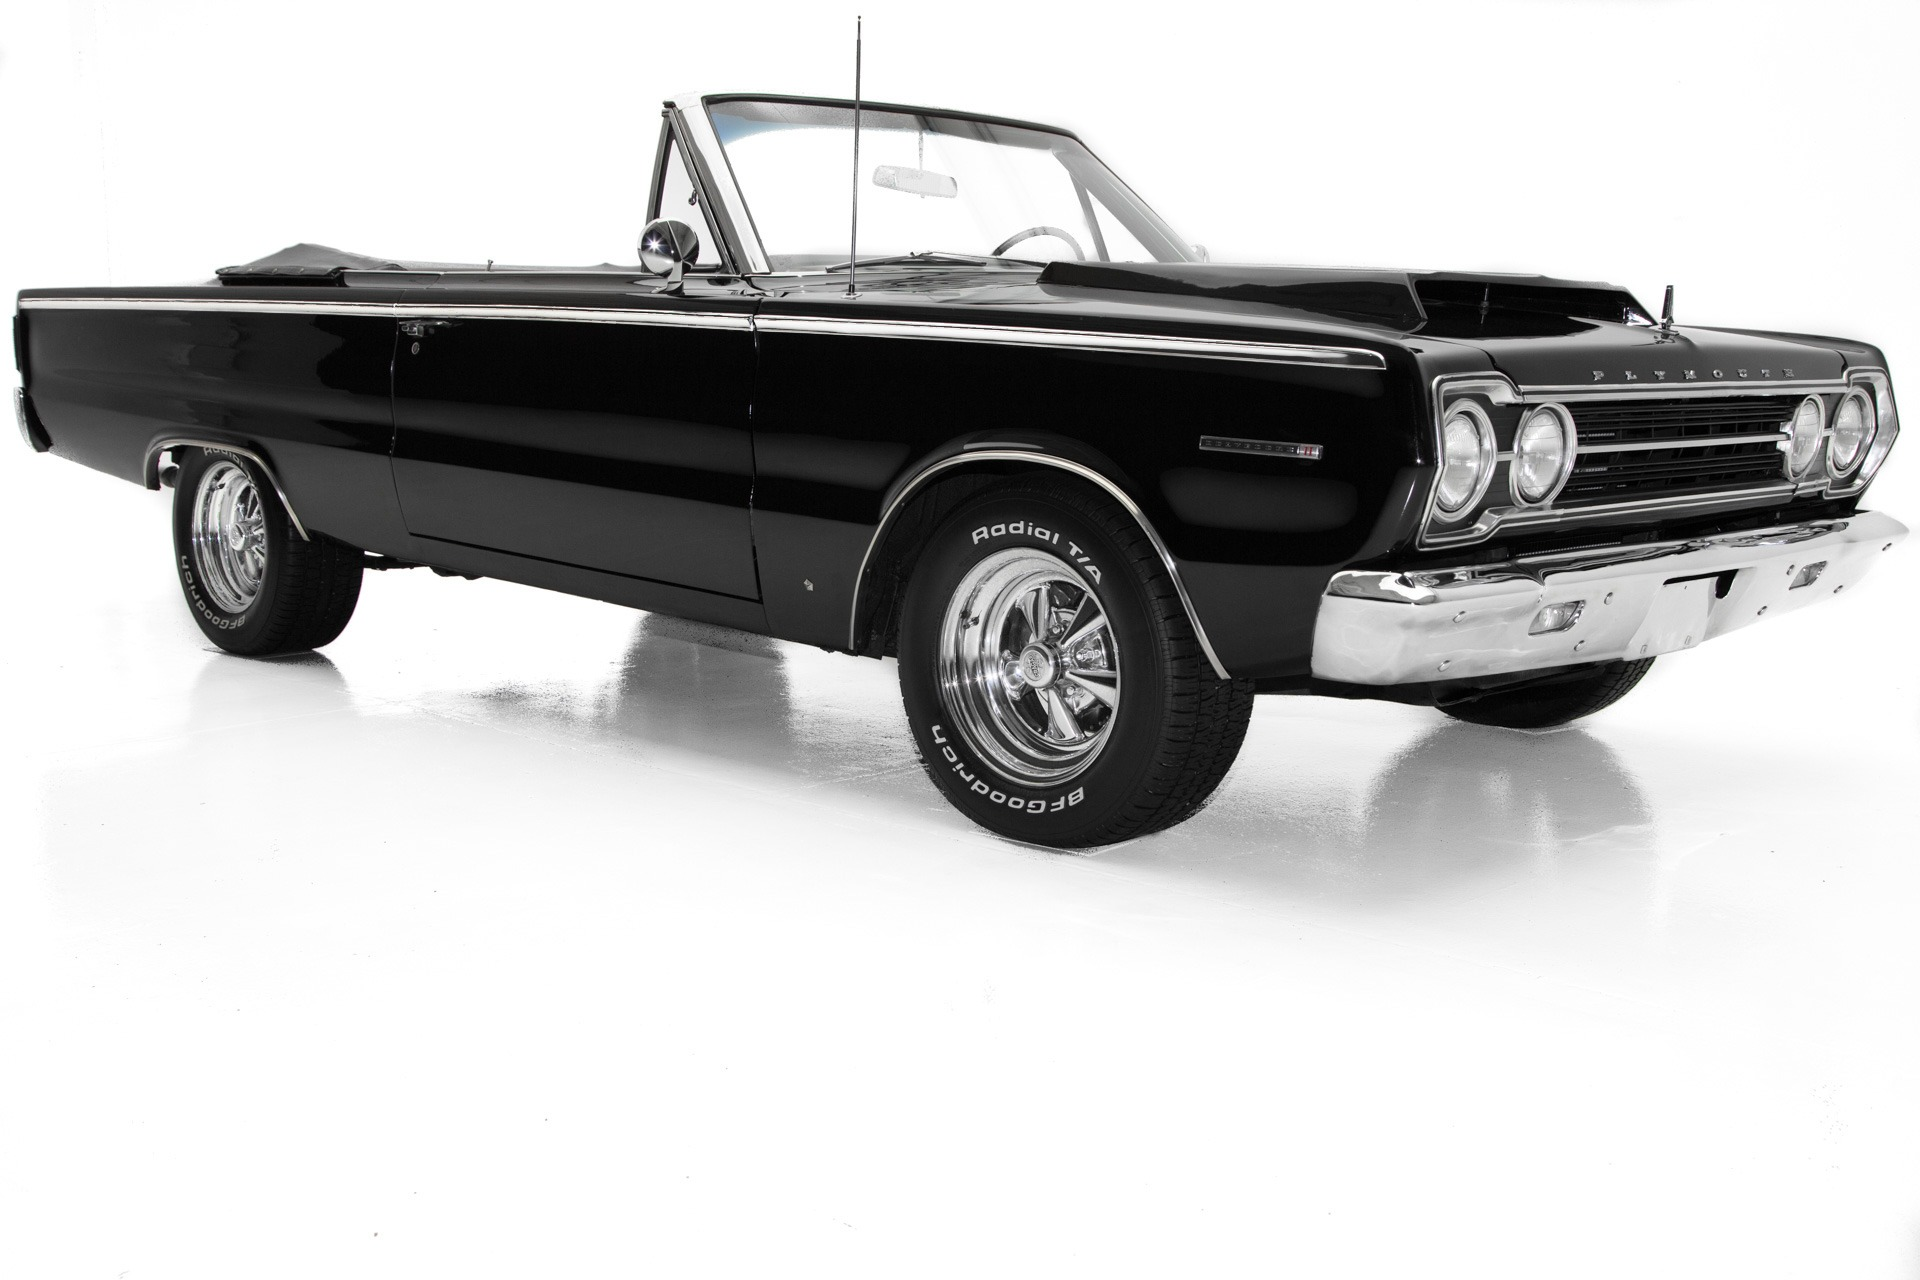 Photo 1967 Plymouth Belvedere II Triple Black, New 360 Great Car. WHOLESALE CLEARANCE PRICED 32900